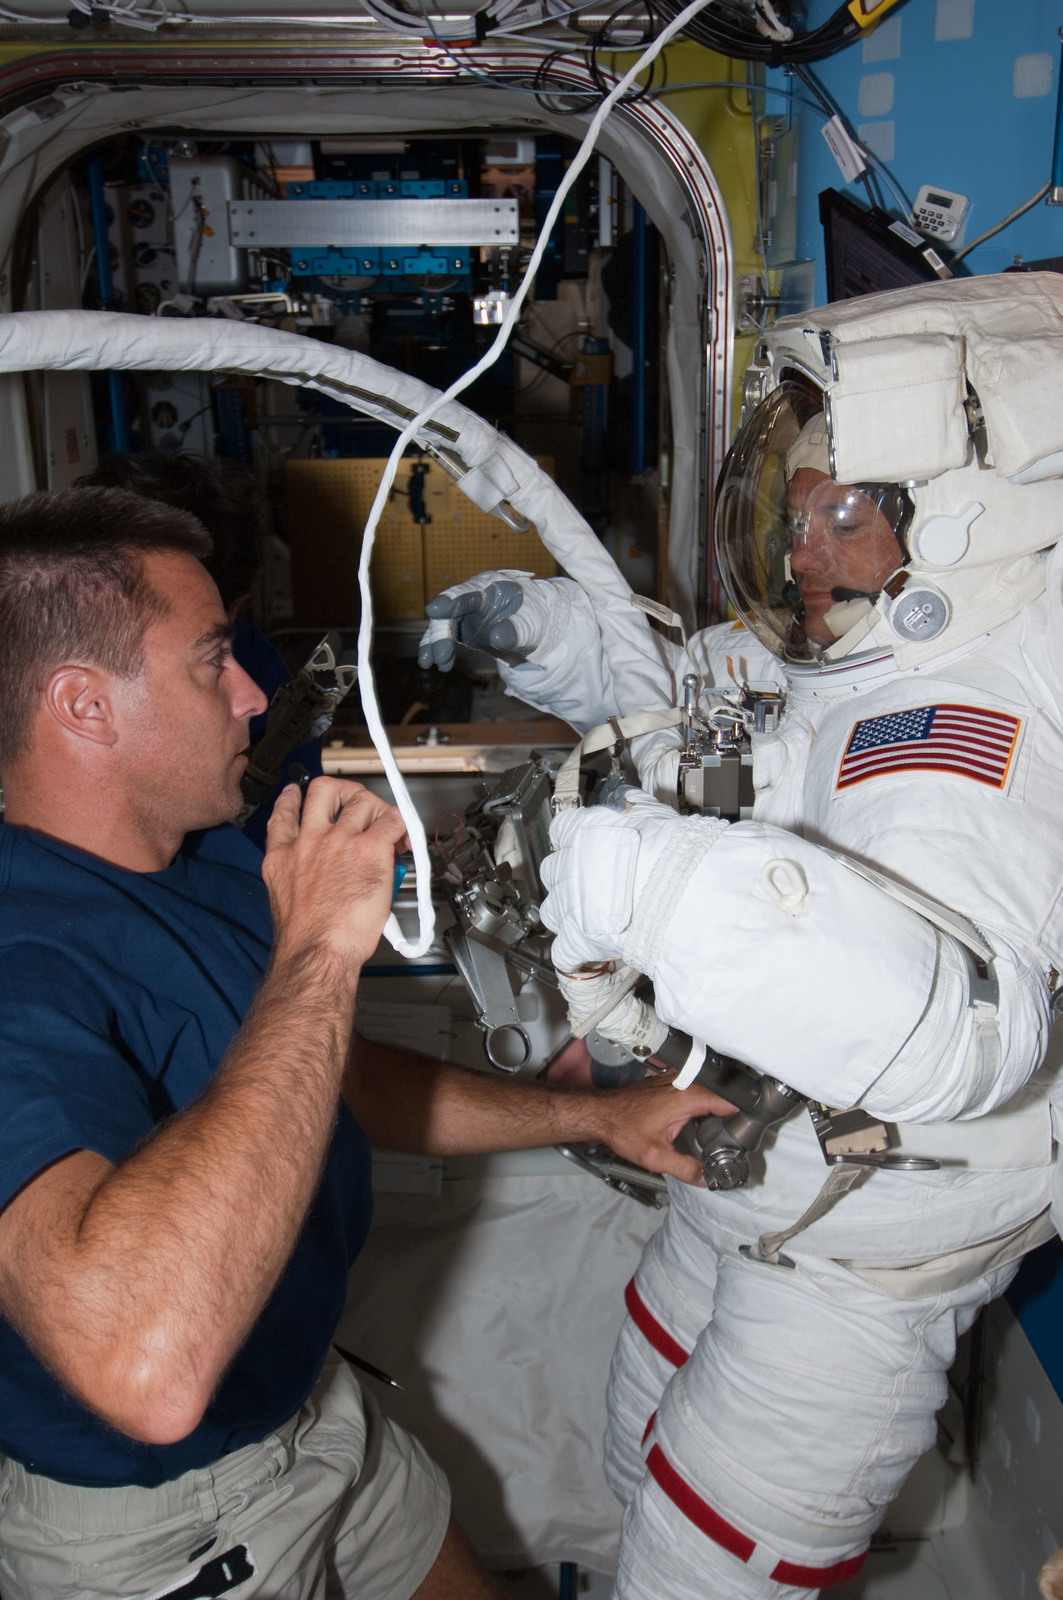 S127E007045 - STS-127 - Cassidy assists Marshburn with his EMU during STS-127 / Expedition 20 Joint Operations